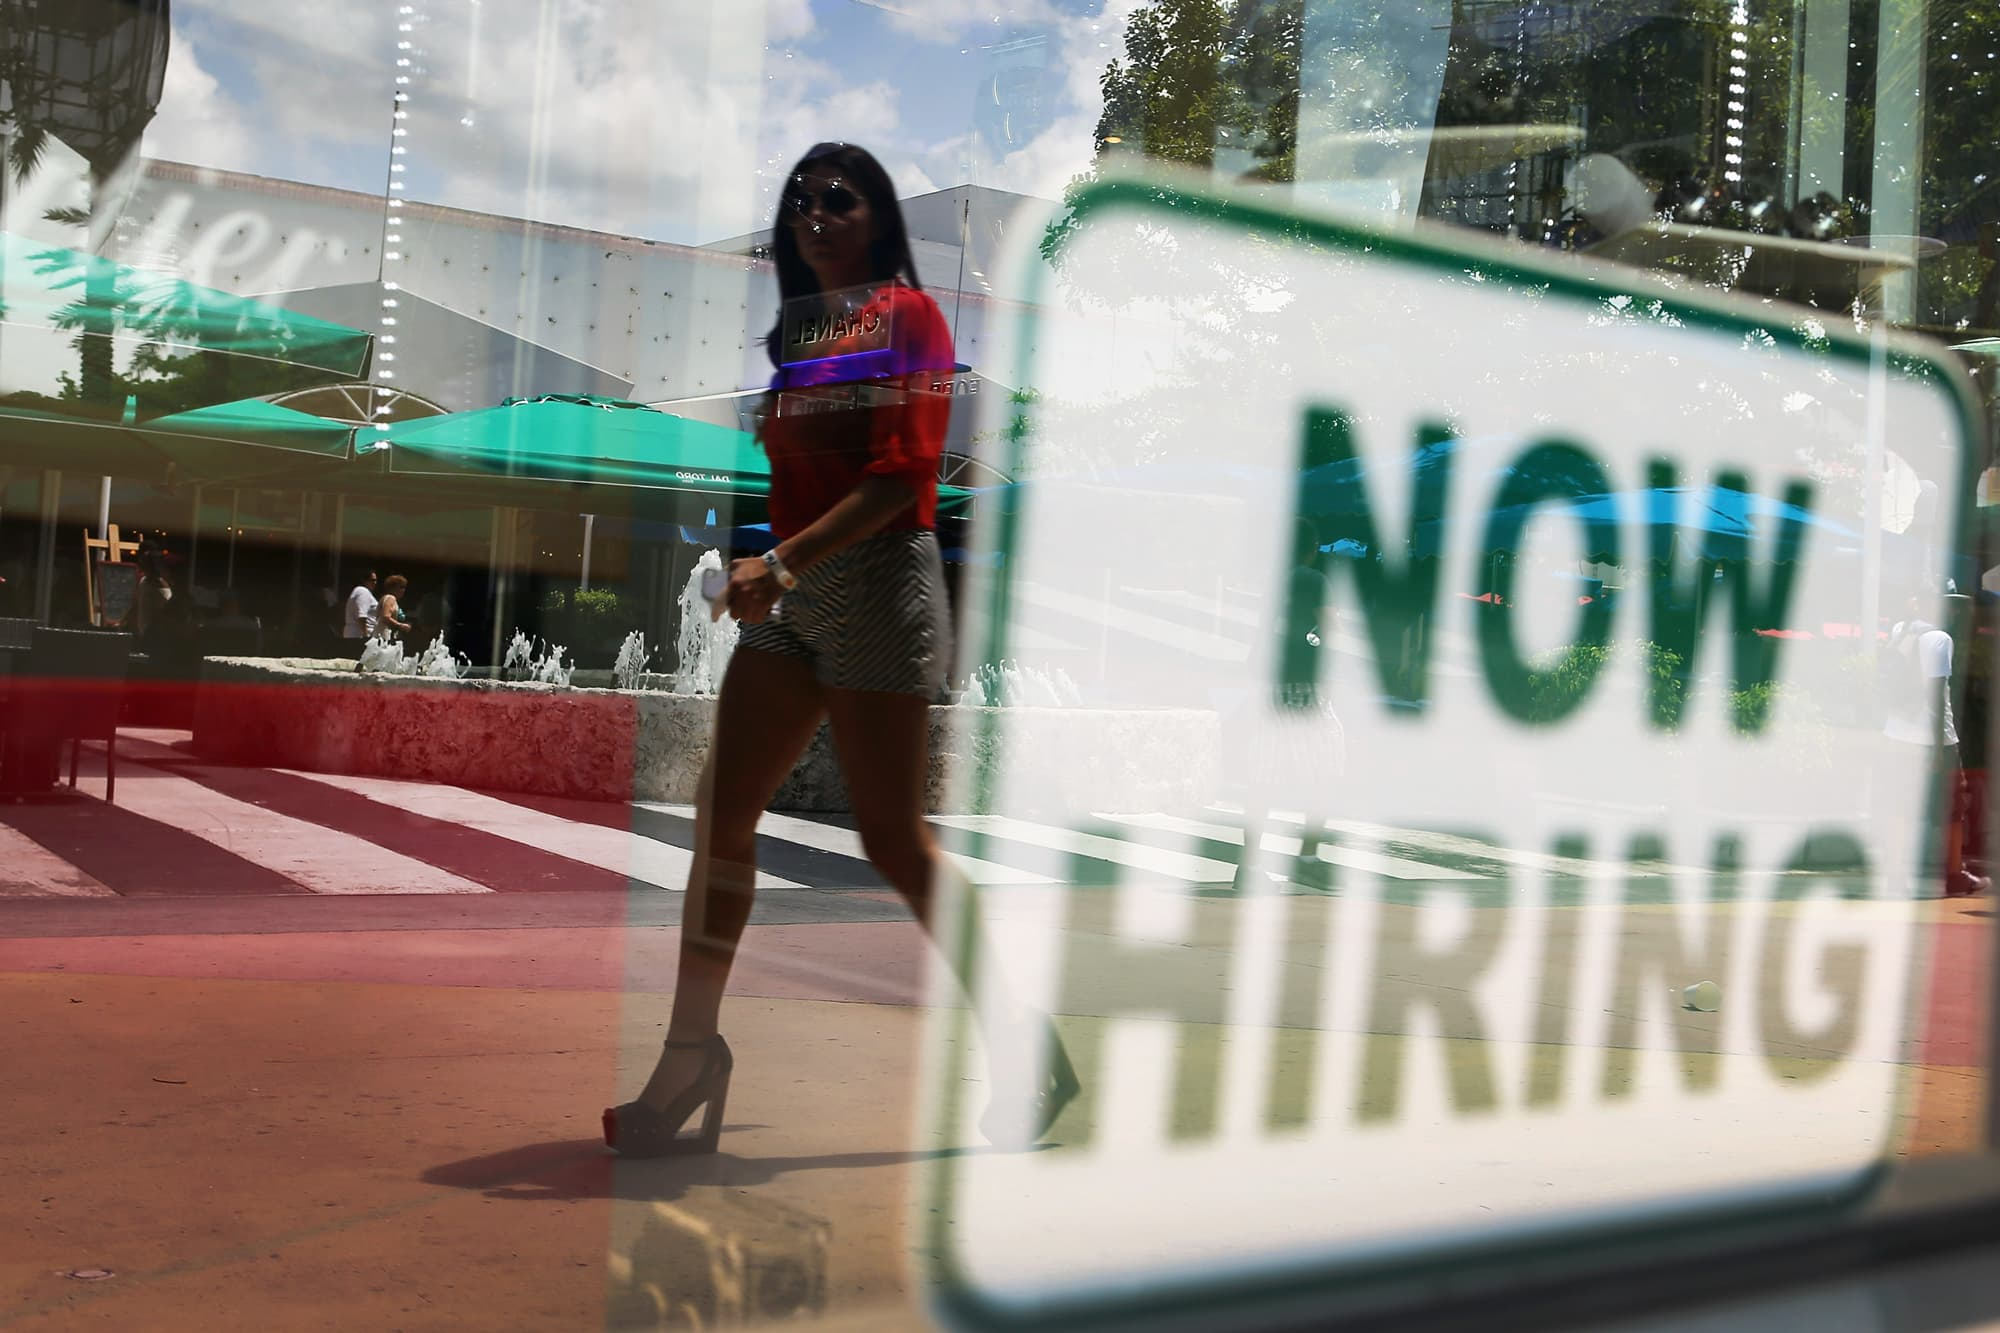 Worker confidence in finding a new job has hit a six-year high, but it might be a 'turning point'